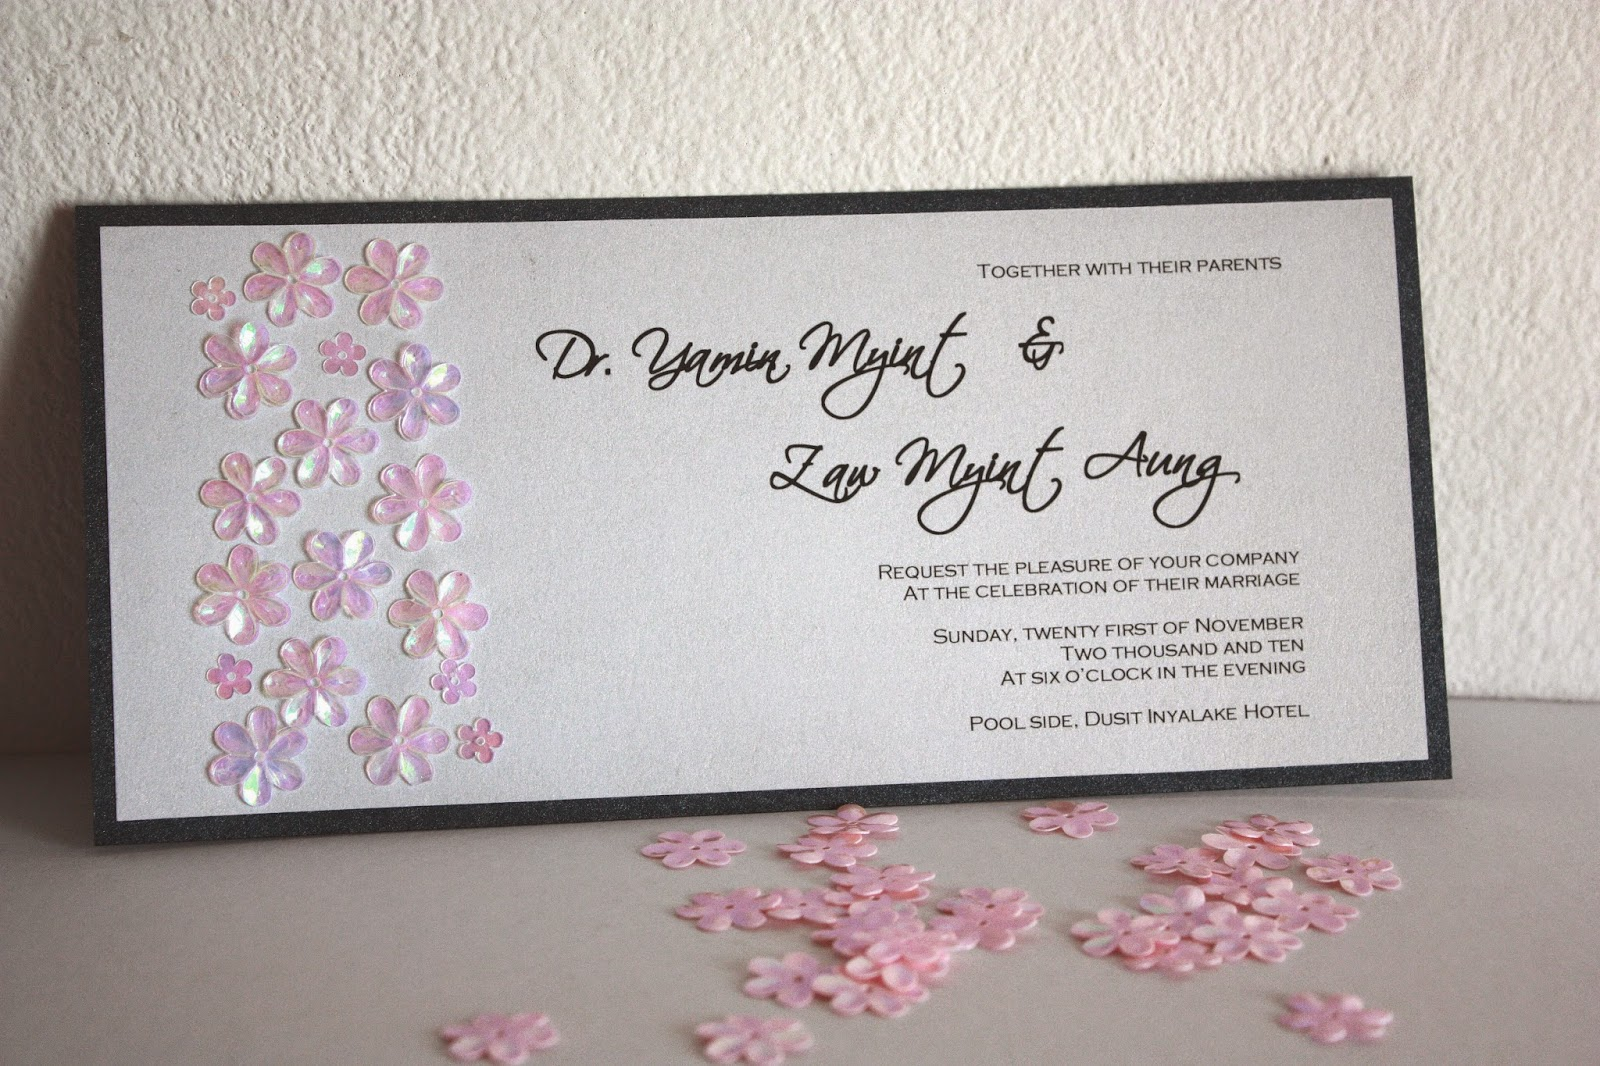 Floral sequined handmade wedding invitation card | Malaysia wedding ...